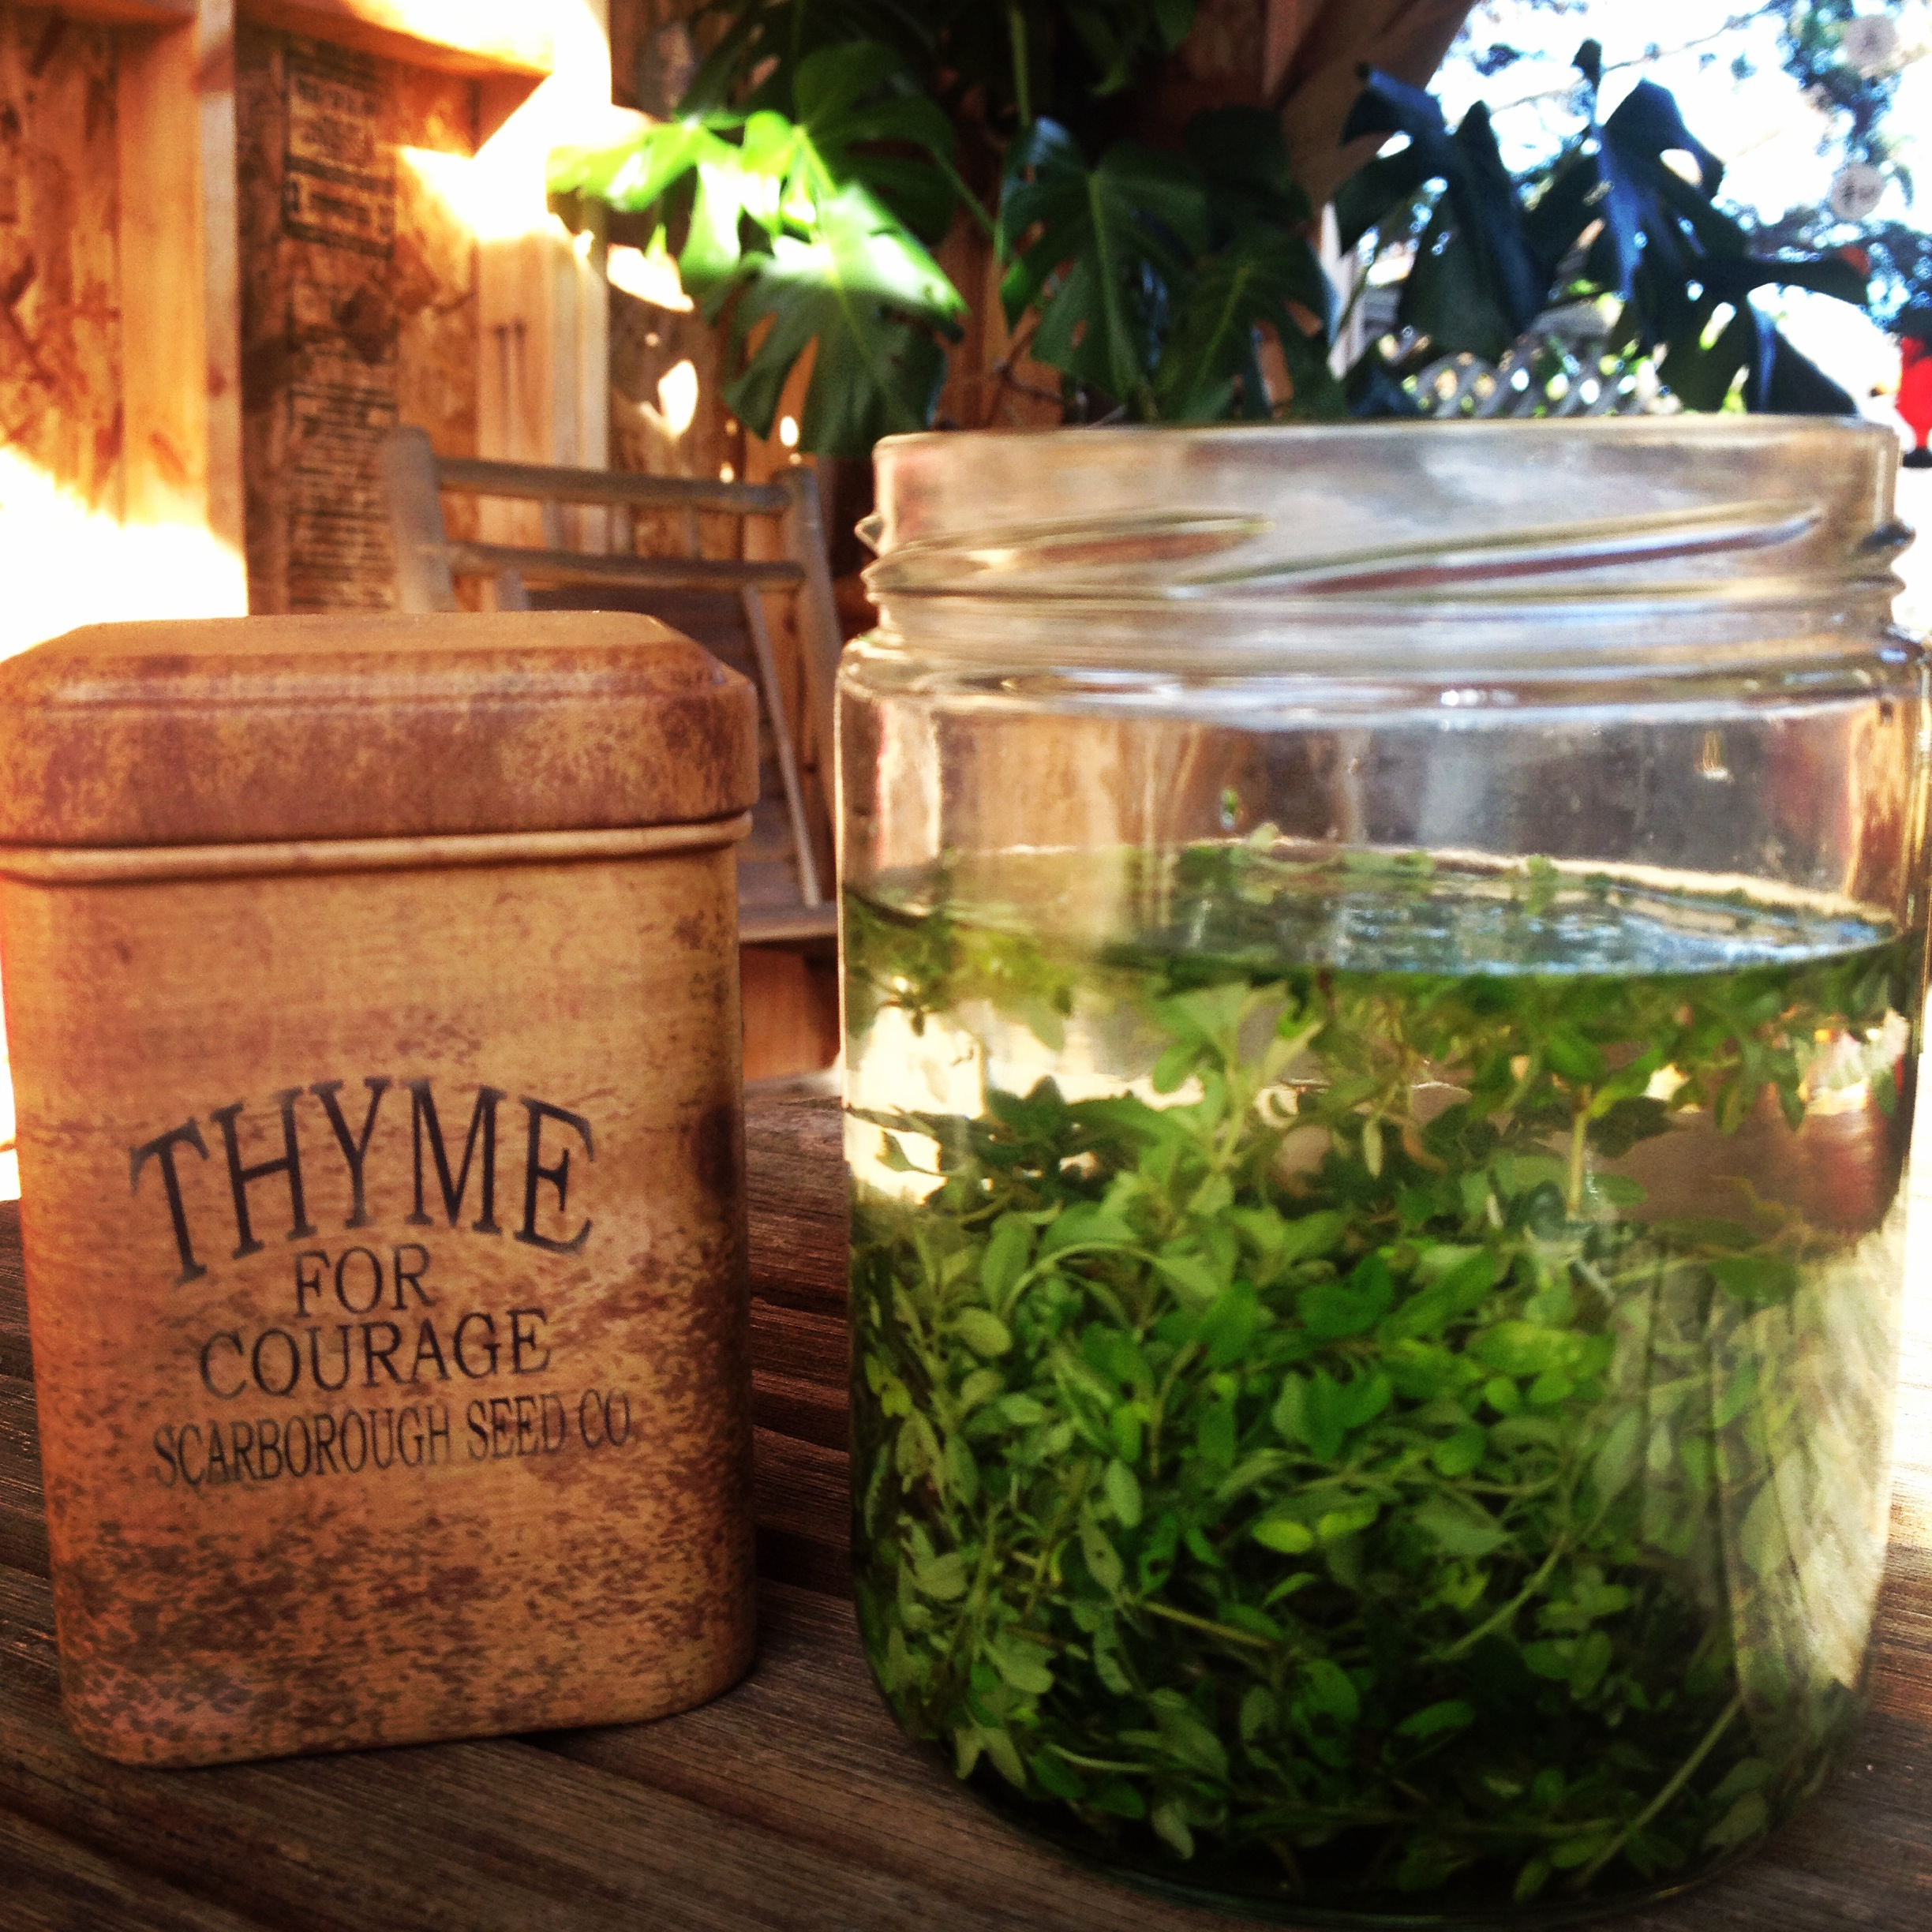 Preparing organicthyme tincture to add in every skin care product I make. It takes time to create with intentionand love.